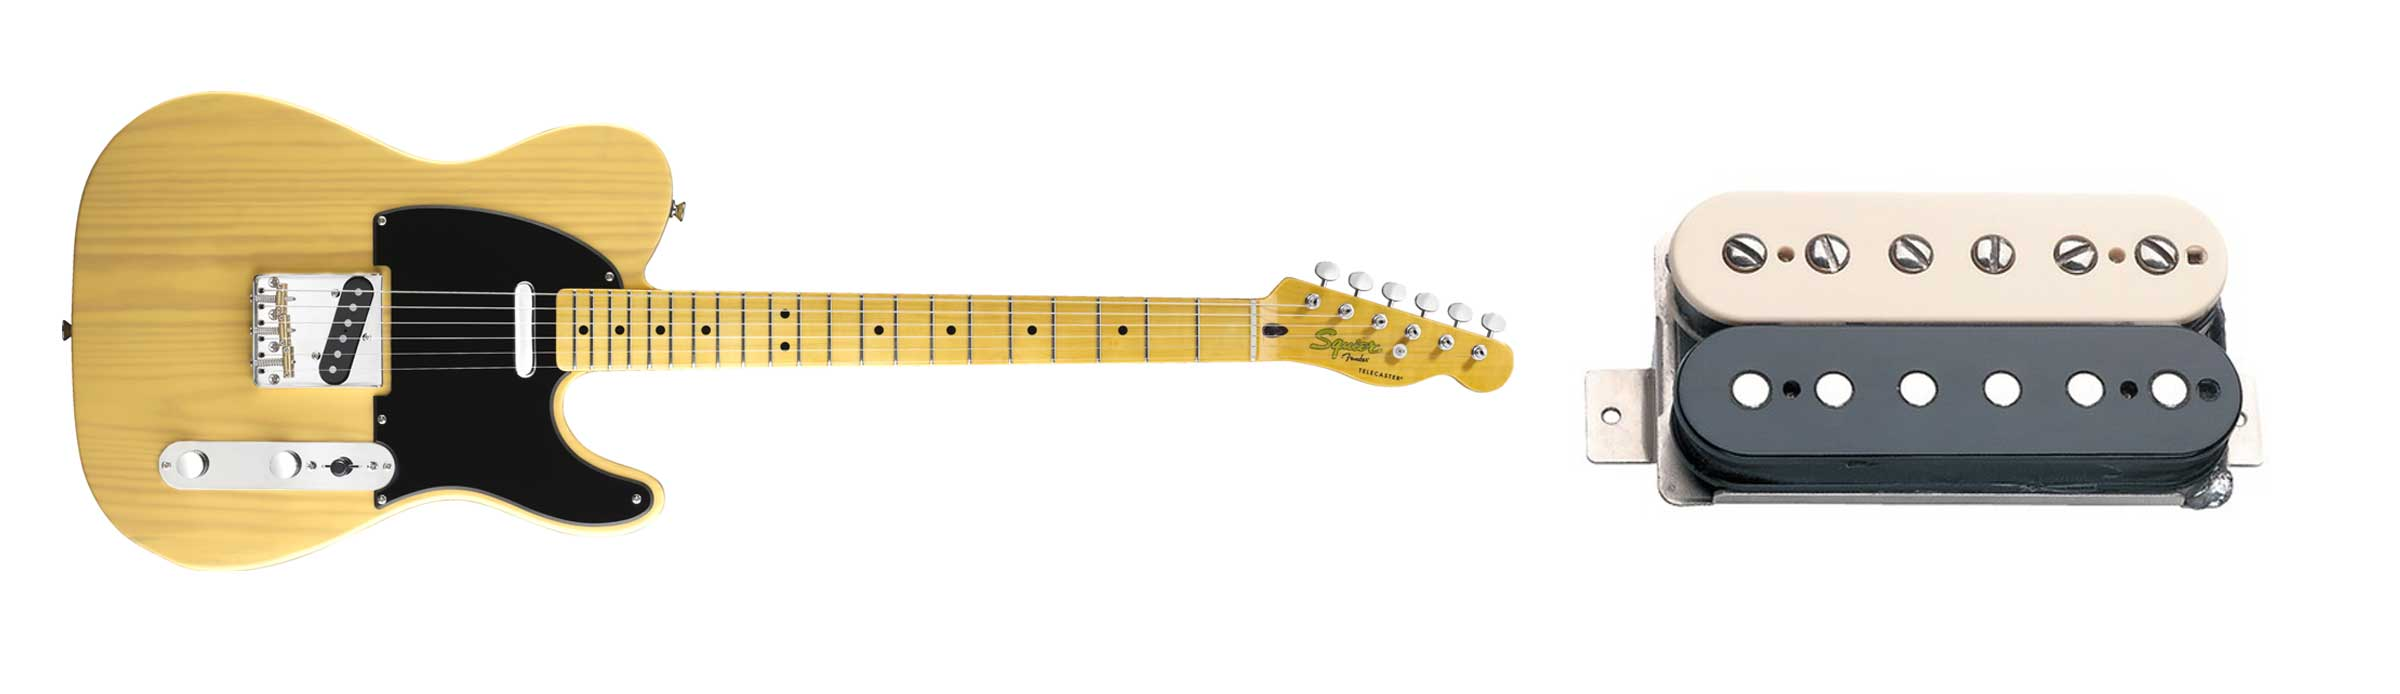 Fender Squier Classic Vibe and Seymour Duncan